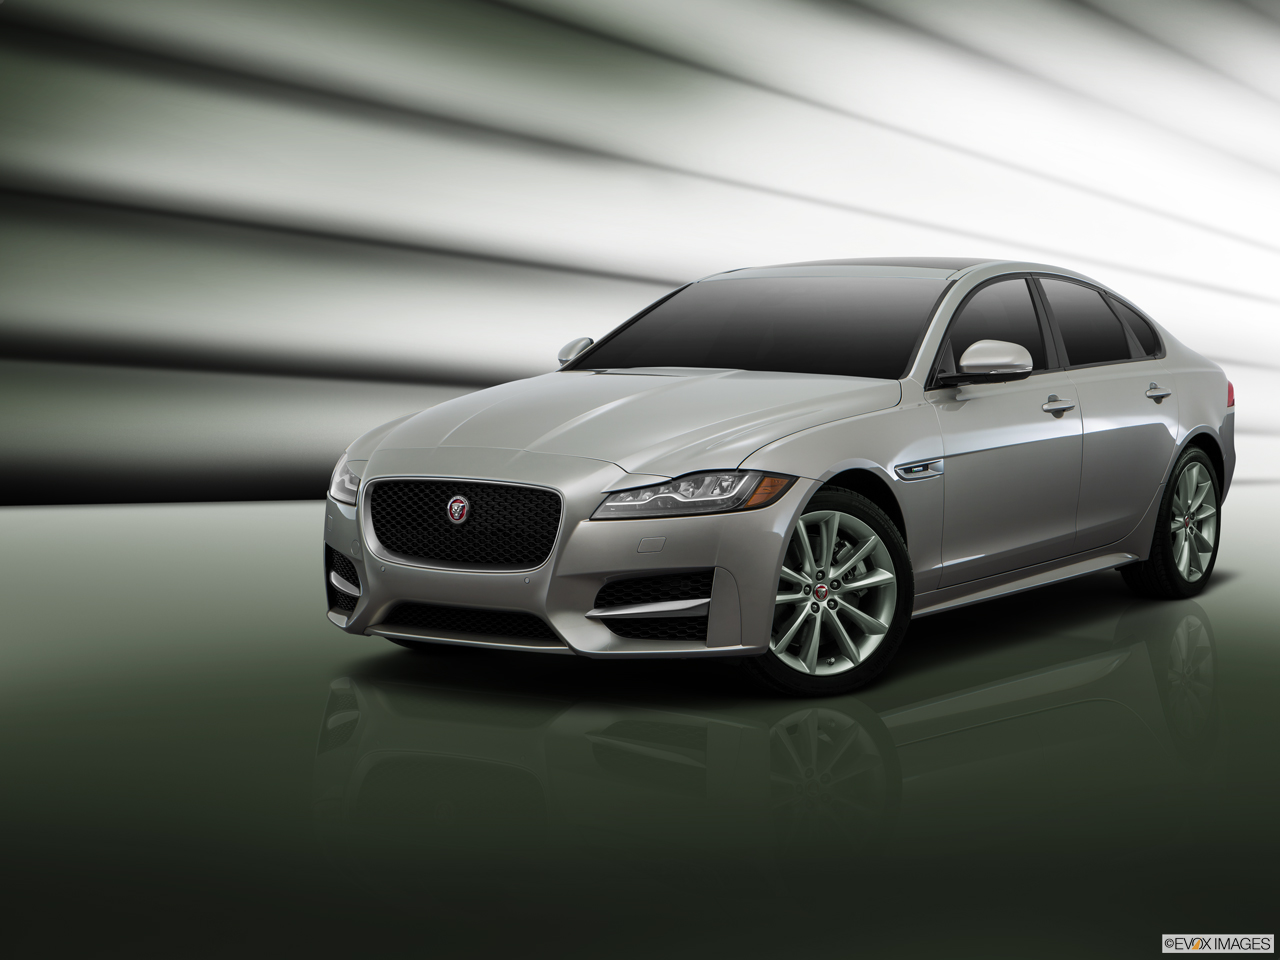 Exterior View Of 2016 Jaguar XF in Los Angeles